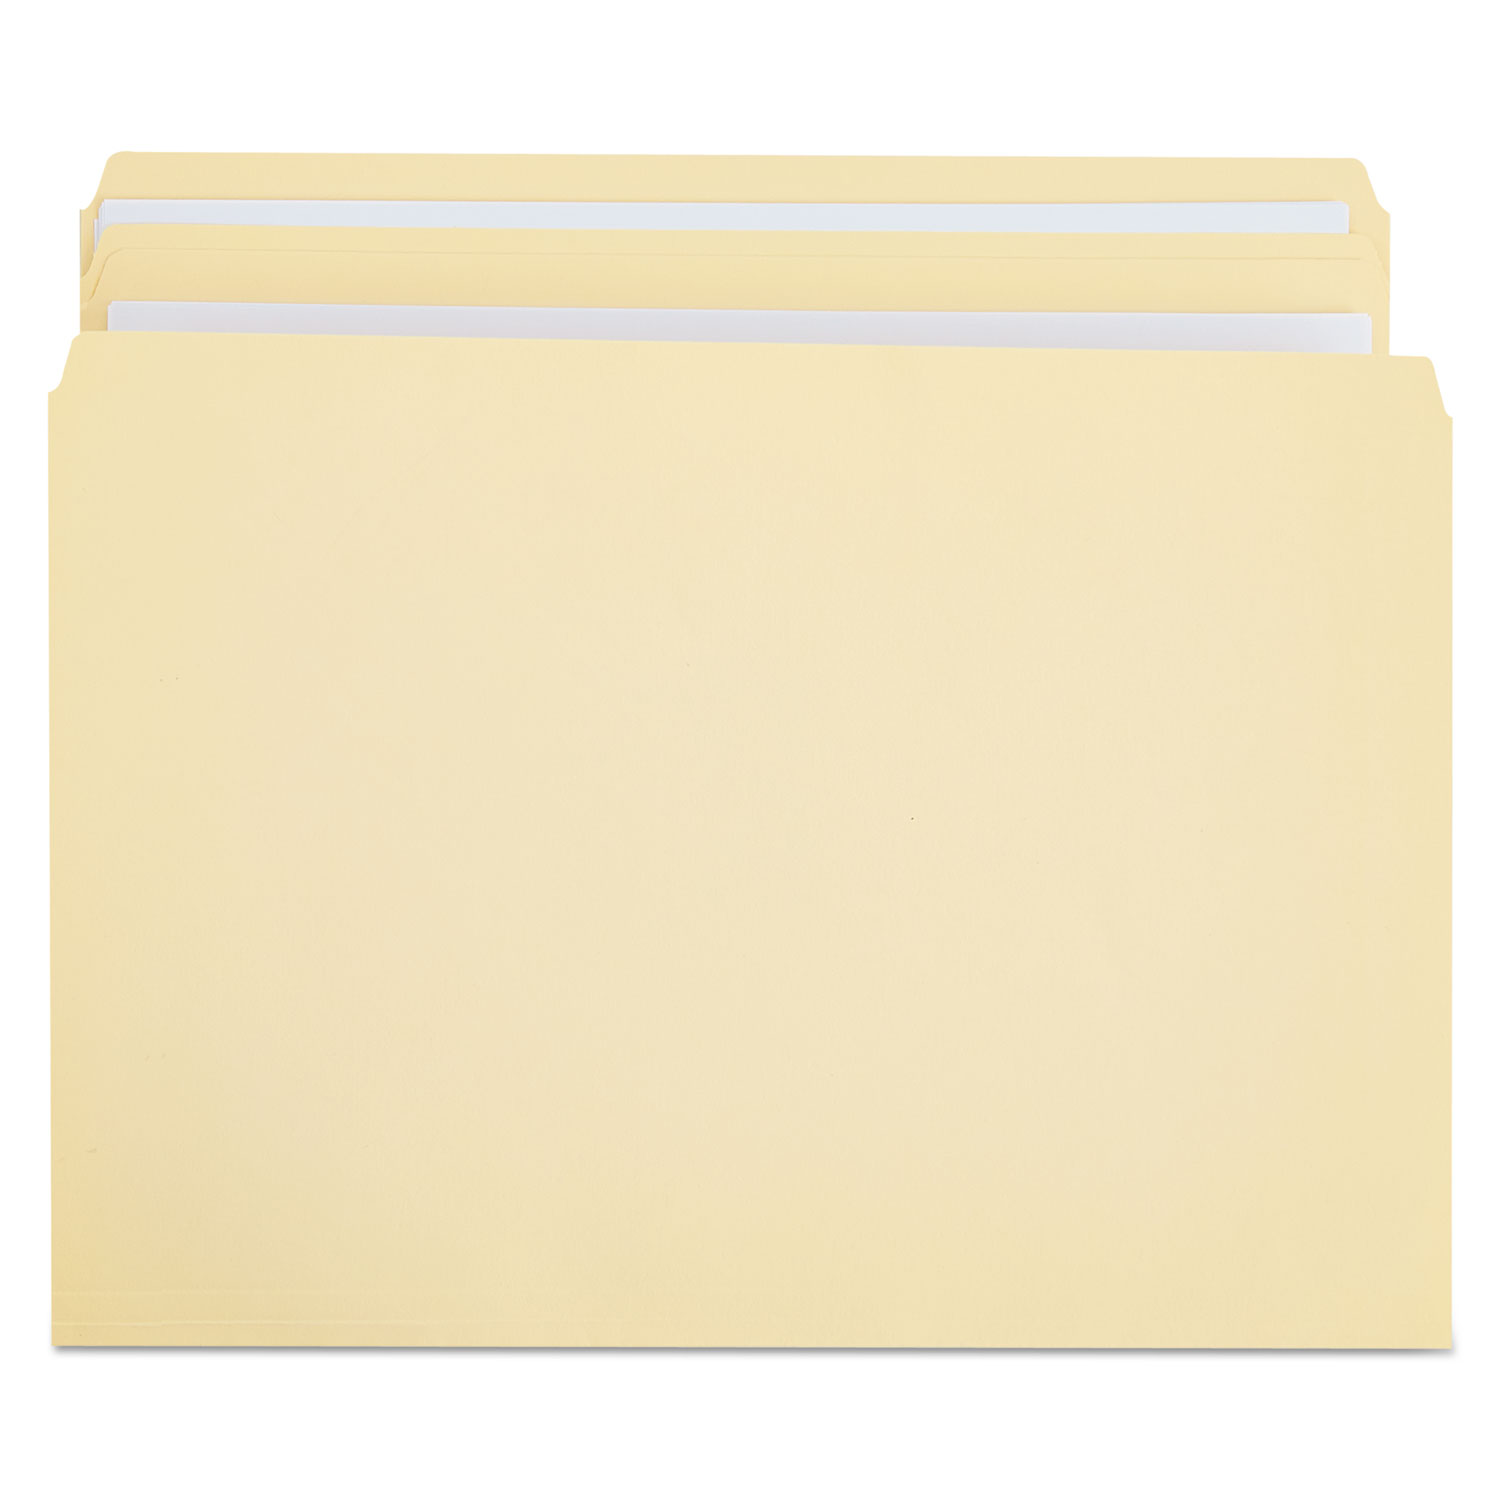 Double-Ply Top Tab Manila File Folders, Straight Tab, Letter Size, 100/Box